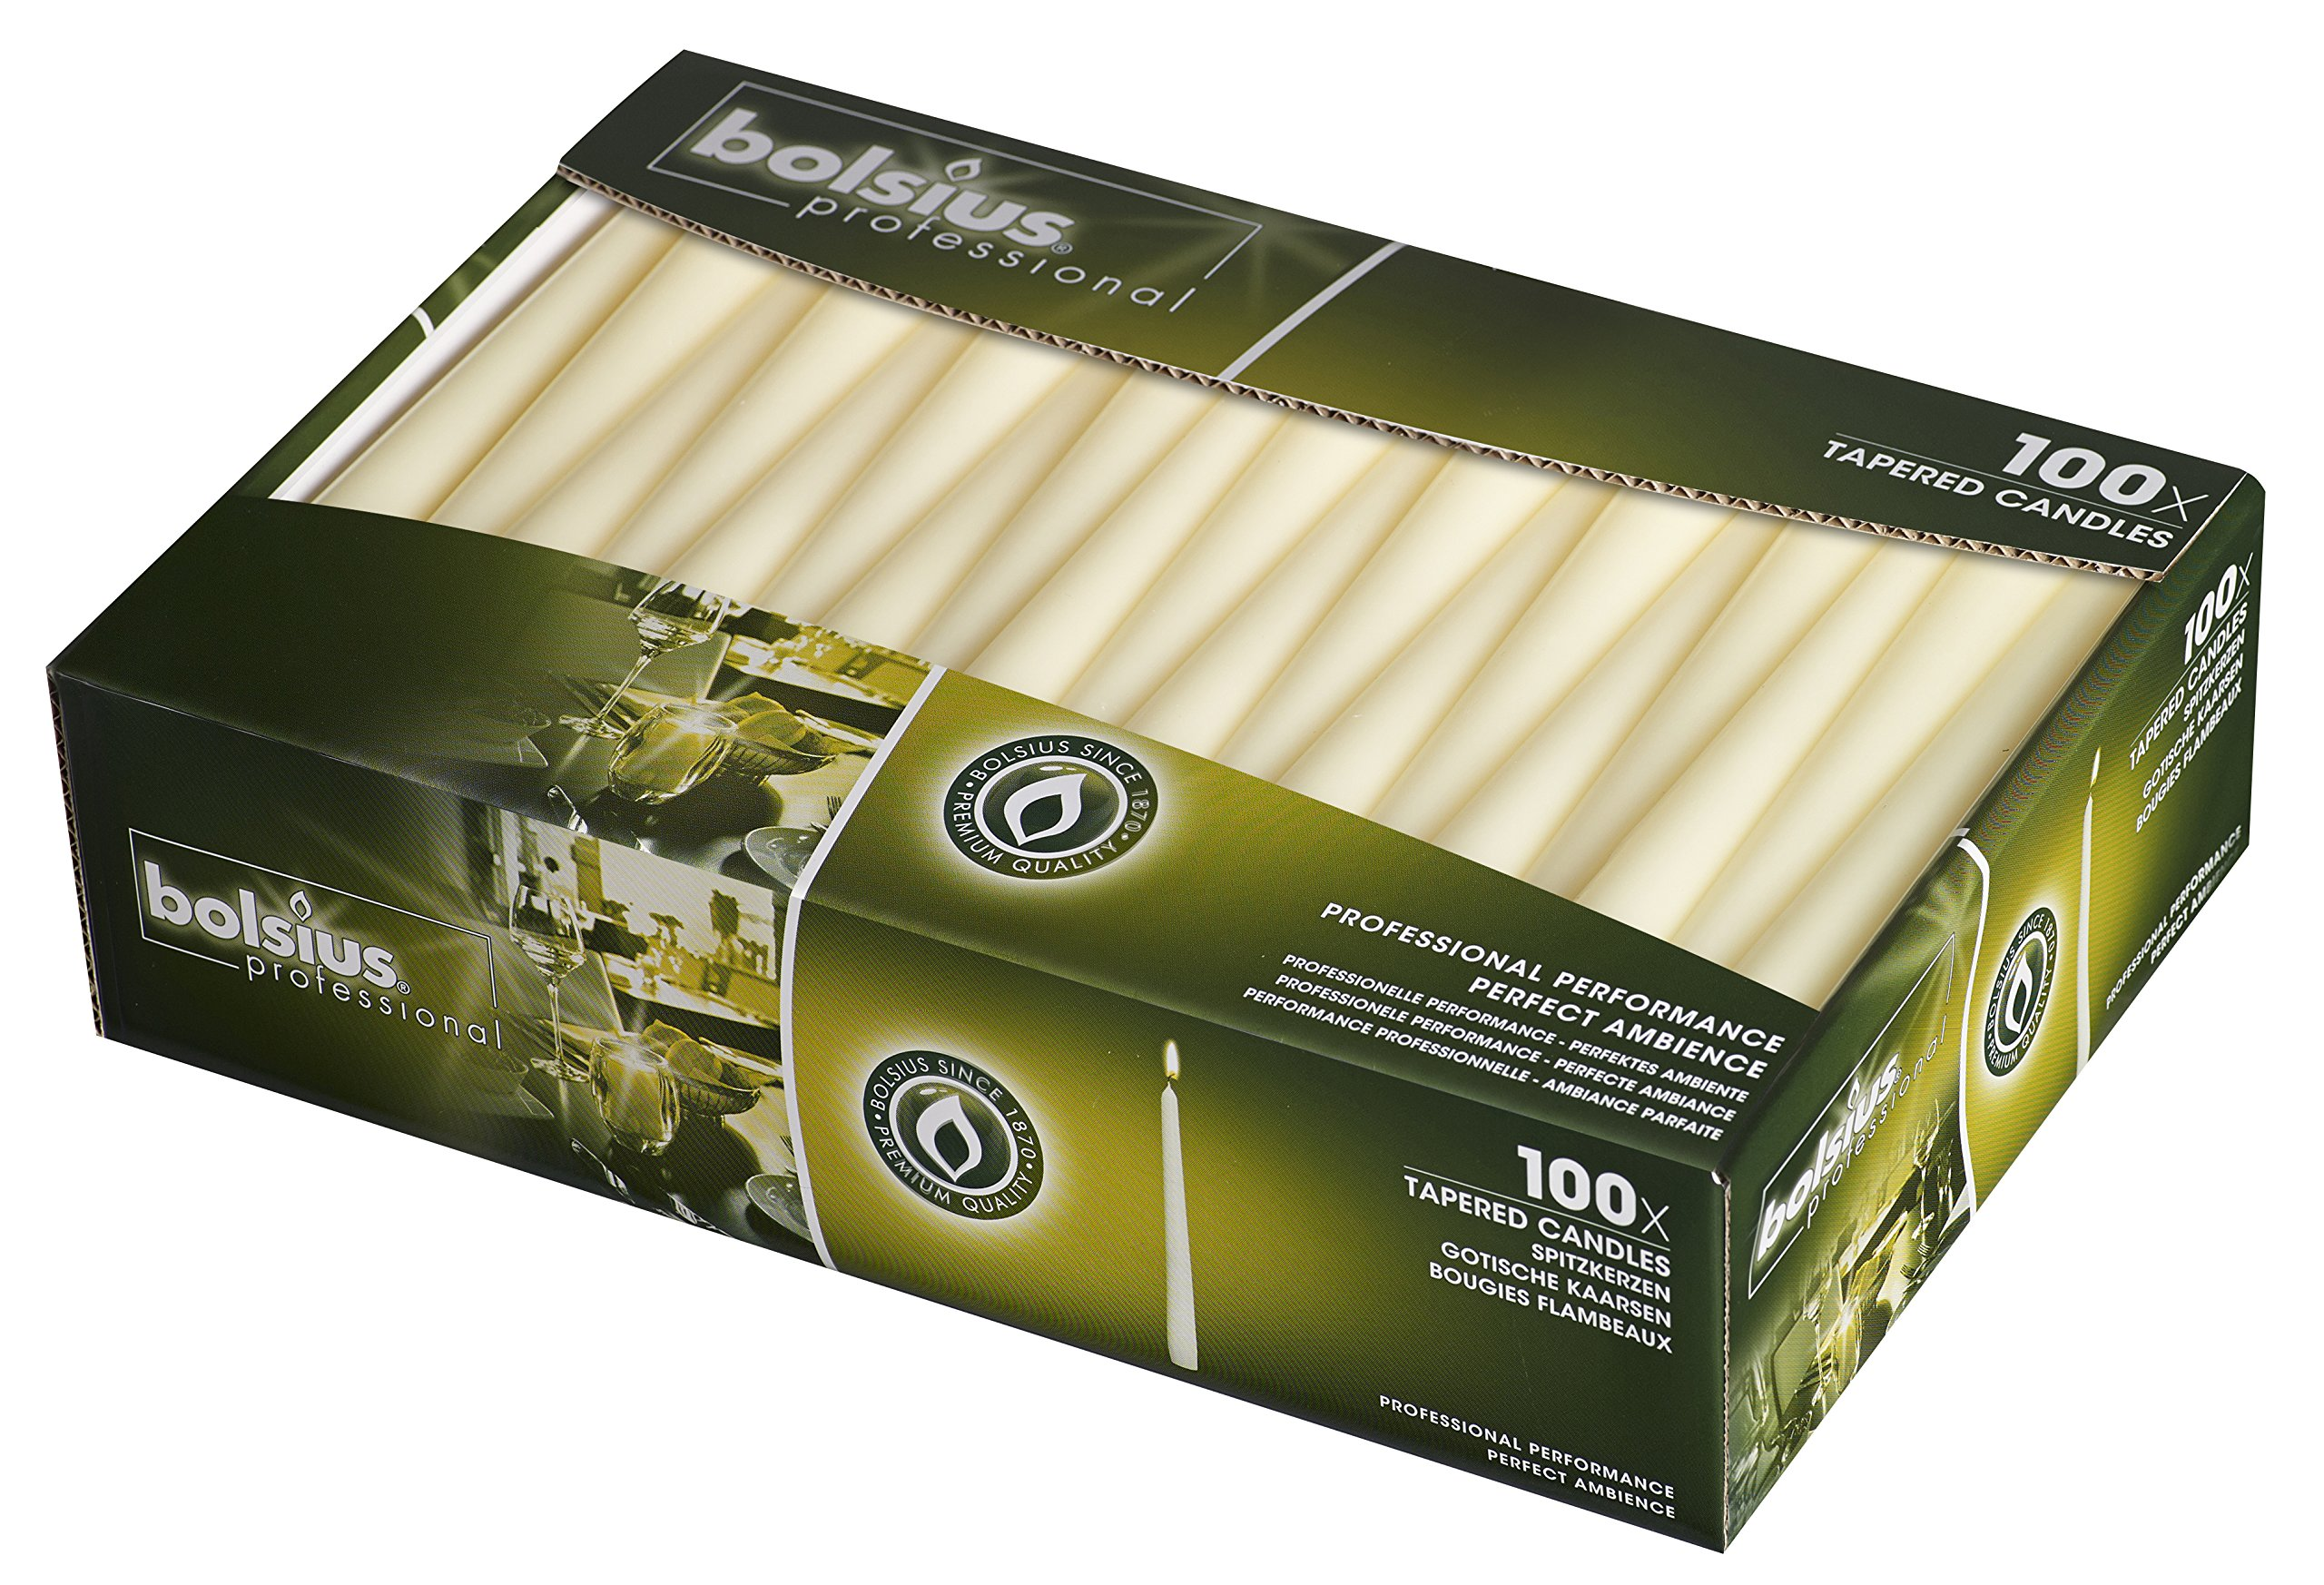 BOLSIUS Long Household Ivory Taper Candles - 10-inch Unscented Premium Quality Wax - 7.5 Hour Long Burning Dripless Candles Bulk Pack of 100 for Home Decor, Wedding, Parties and Special Occasions by BOLSIUS